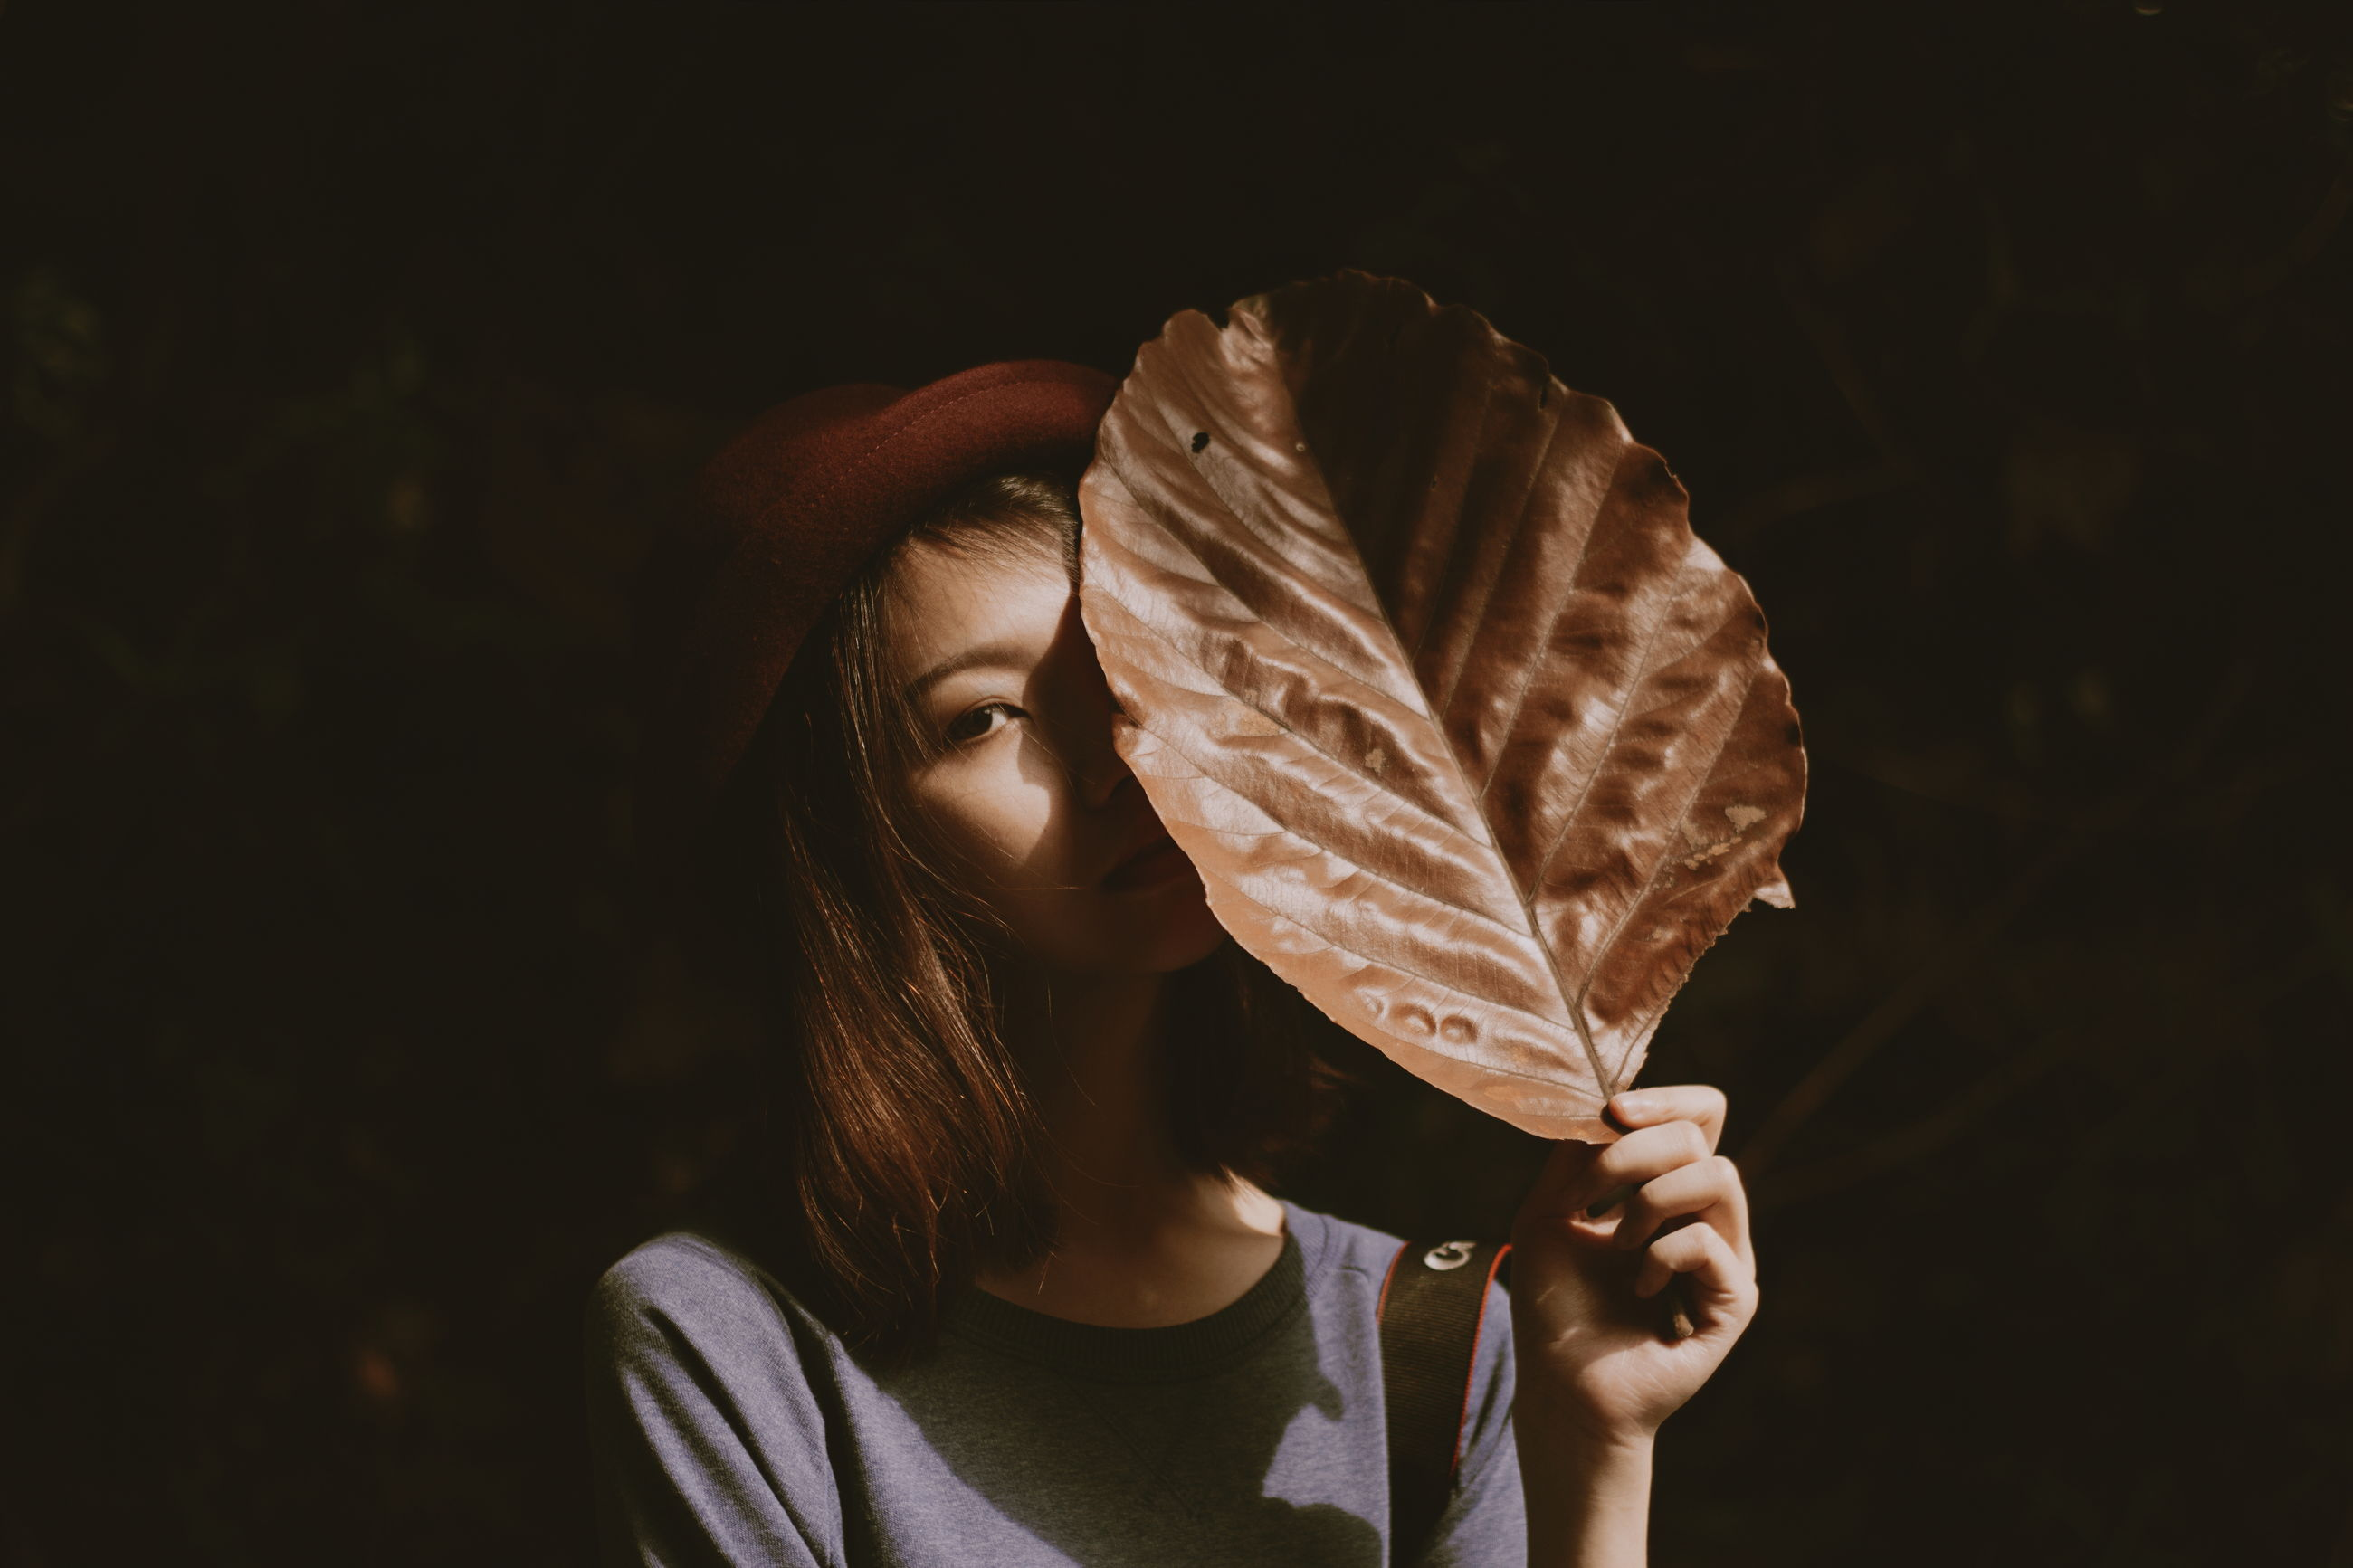 lifestyles, leaf, leisure activity, holding, close-up, person, studio shot, standing, focus on foreground, casual clothing, men, outdoors, side view, part of, leaf vein, night